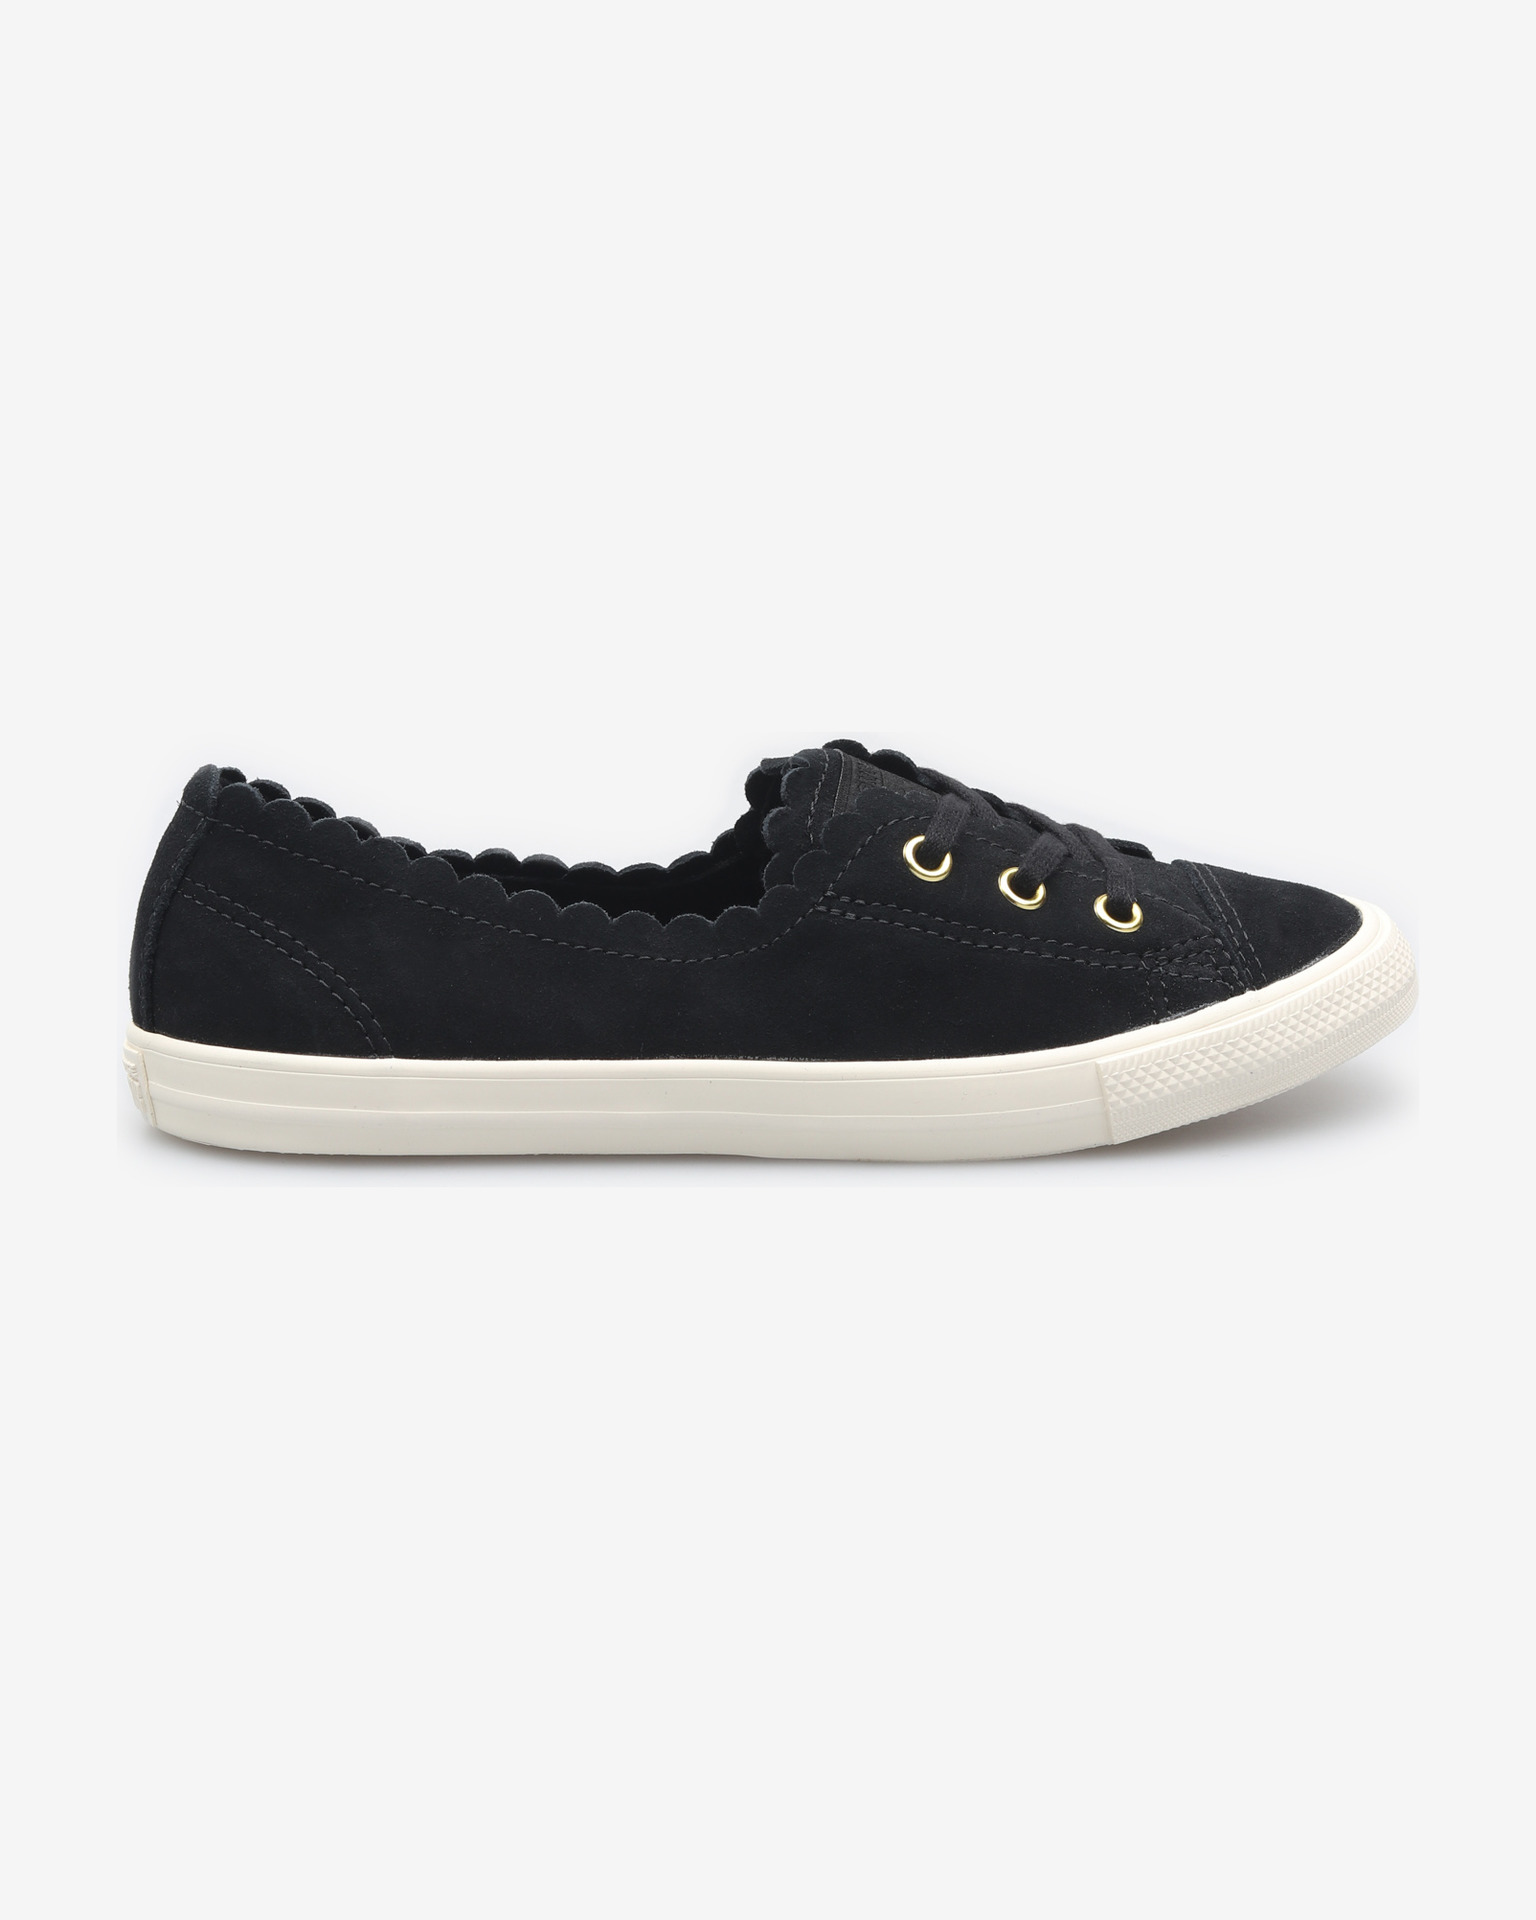 Chuck Taylor All Star Scallop Sneakers